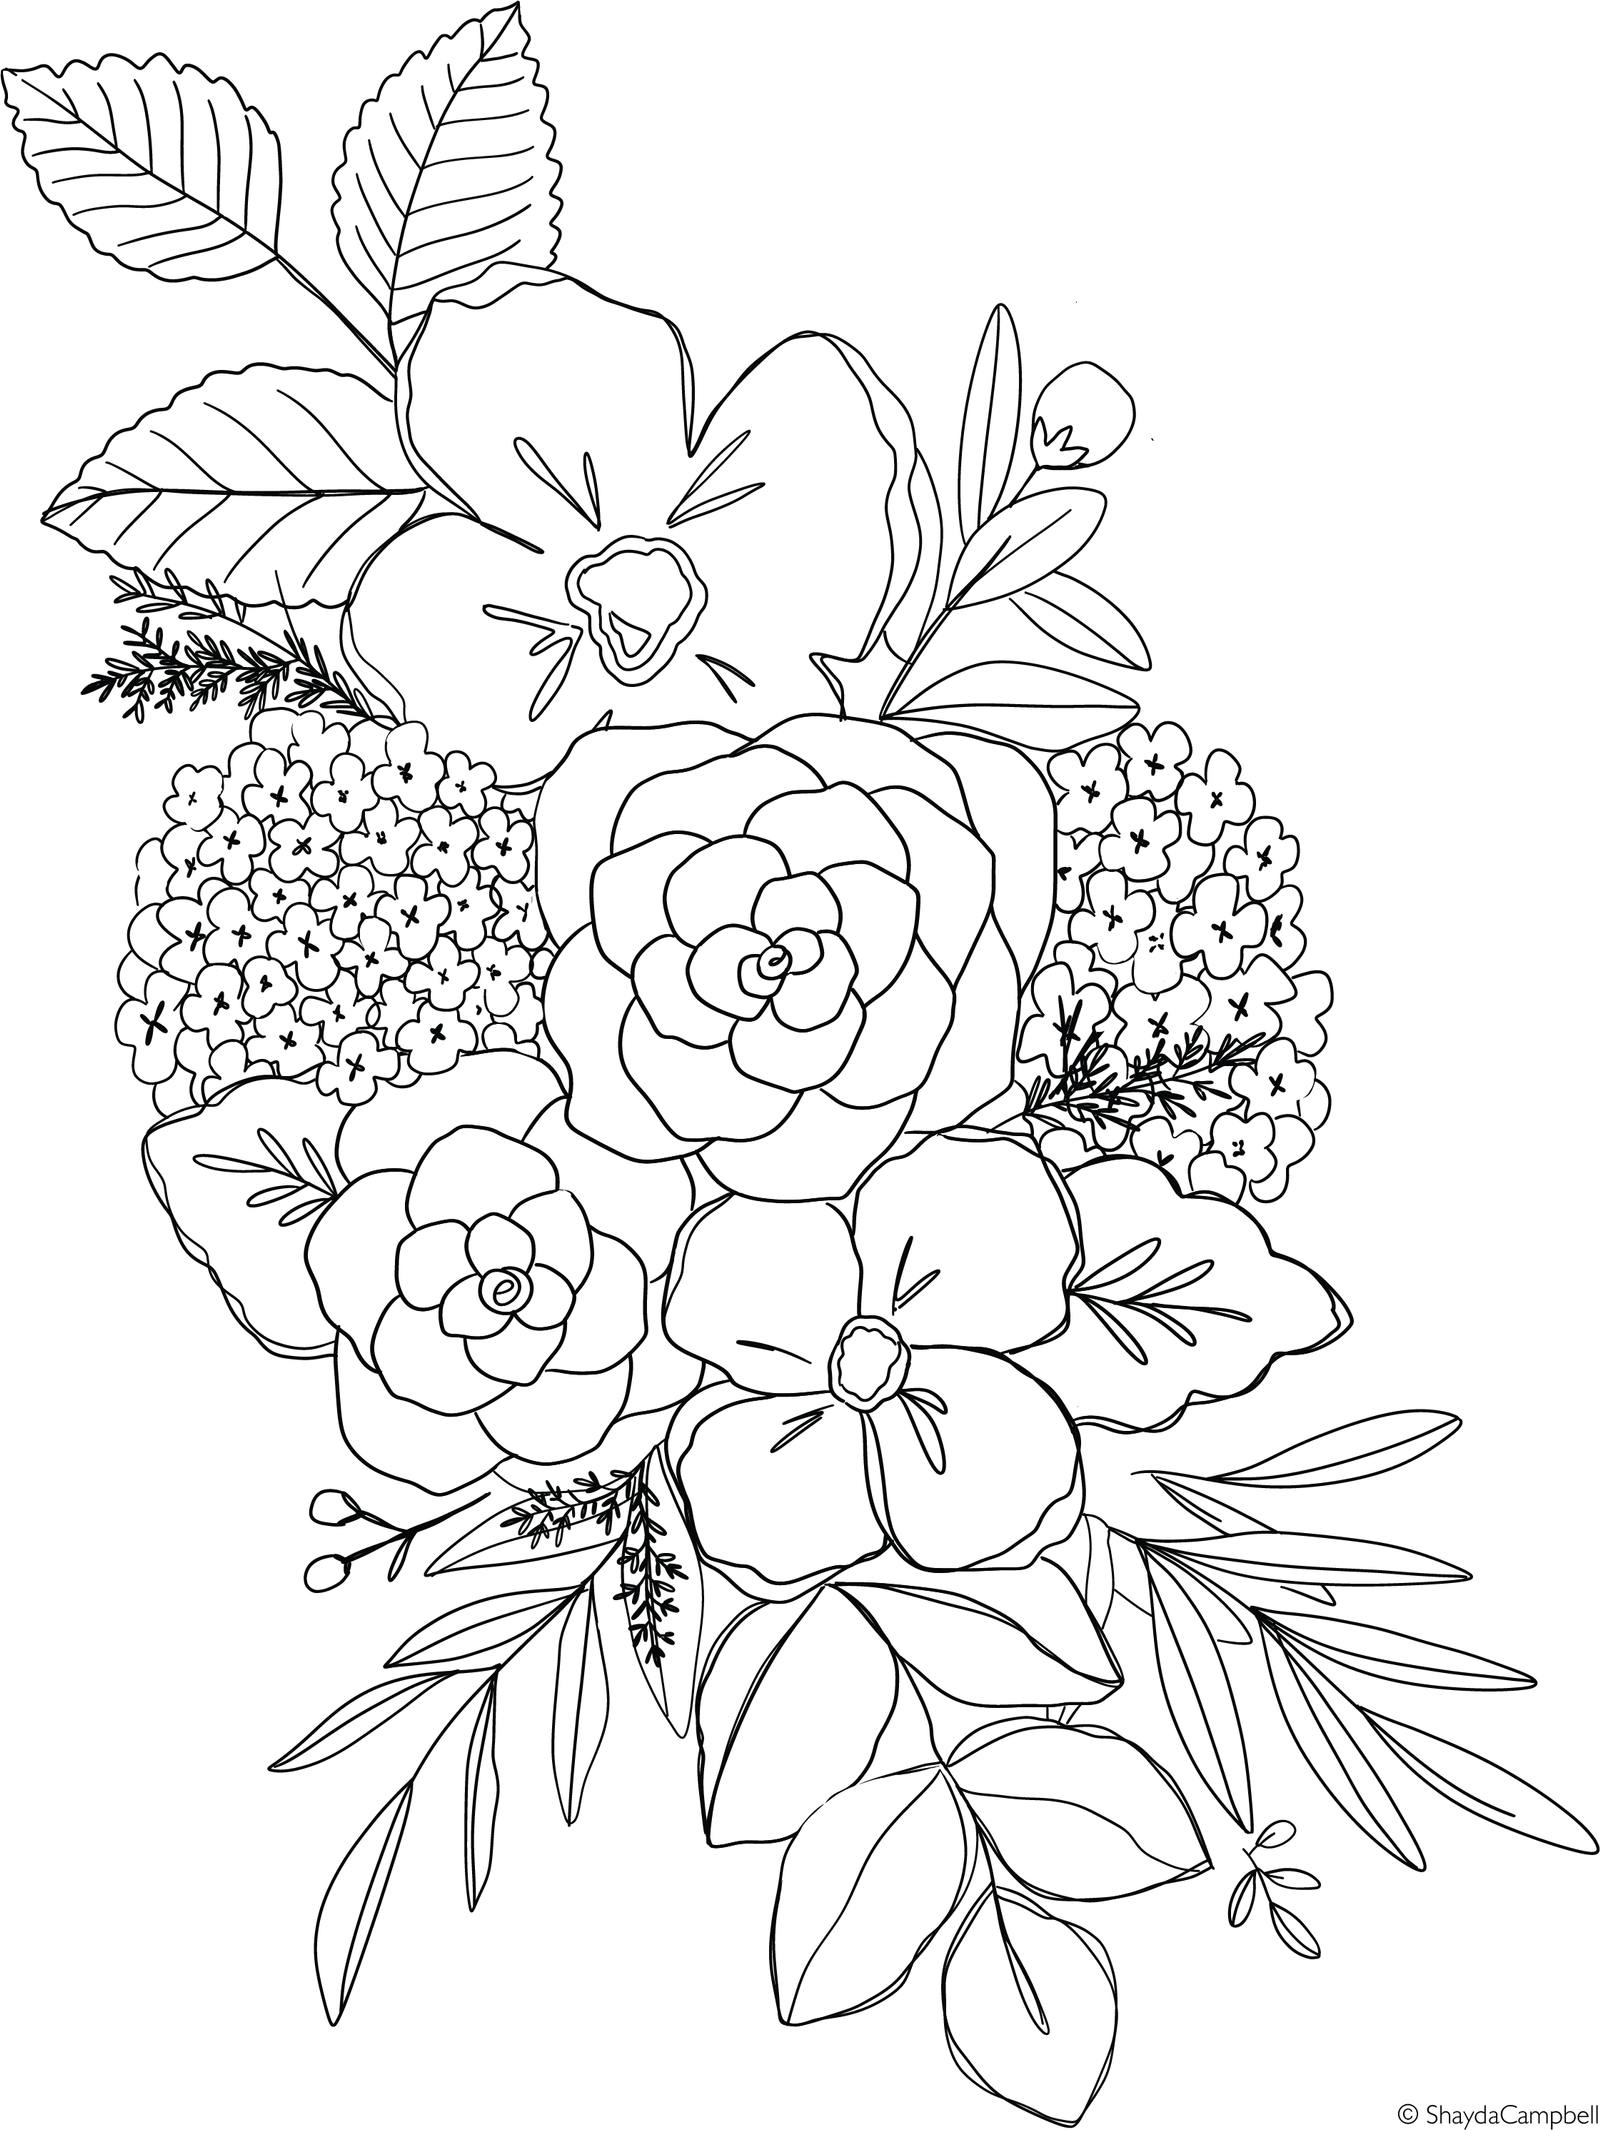 Spring Hydrangea Coloring Page Shayda Campbell On Patreon Flower Coloring Pages Floral Drawing Coloring Pages